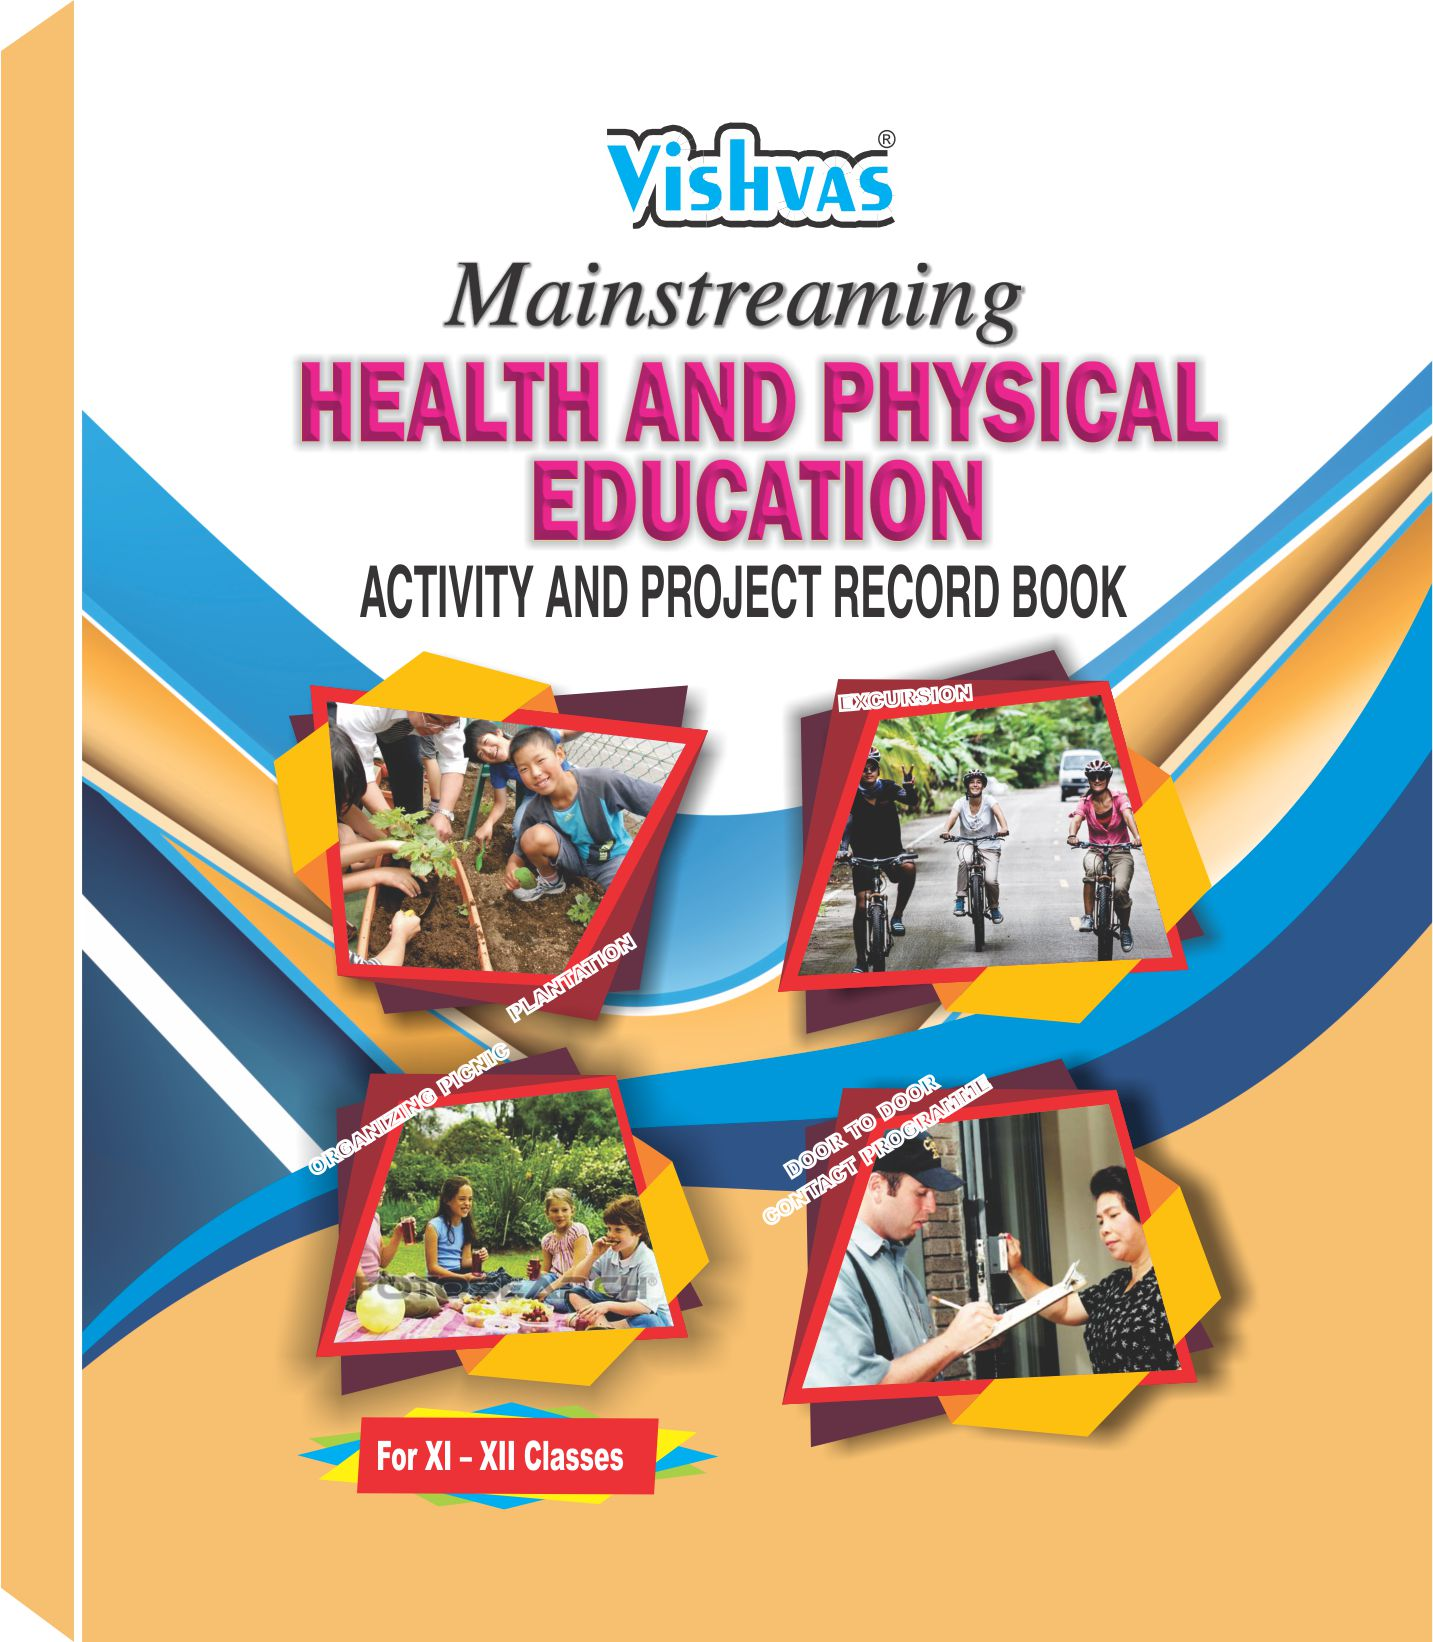 Mainstreaming Health And Physical Education (Project Record book) for IX to XII Classes